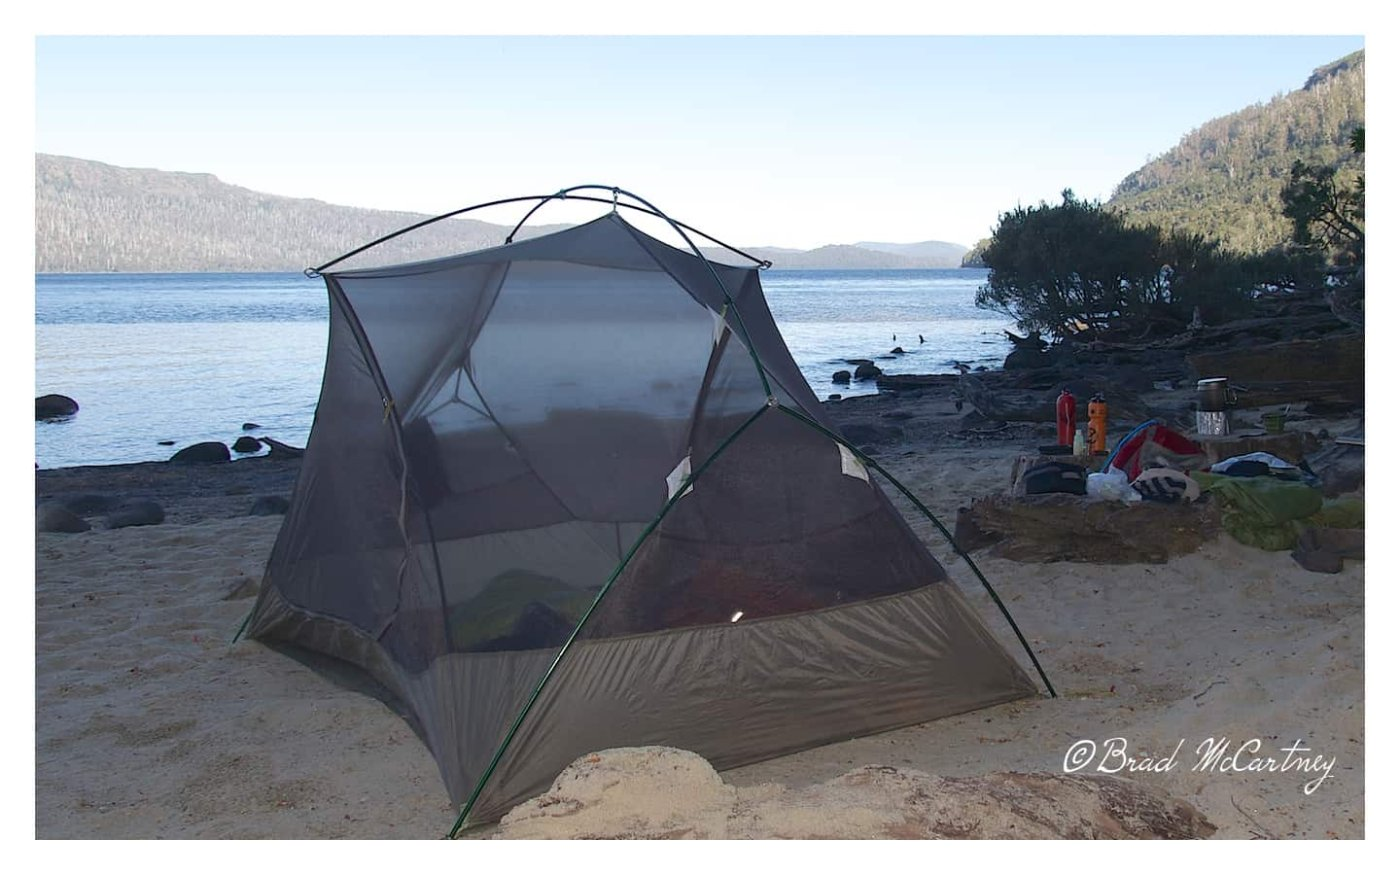 Camping on Lake St Clair